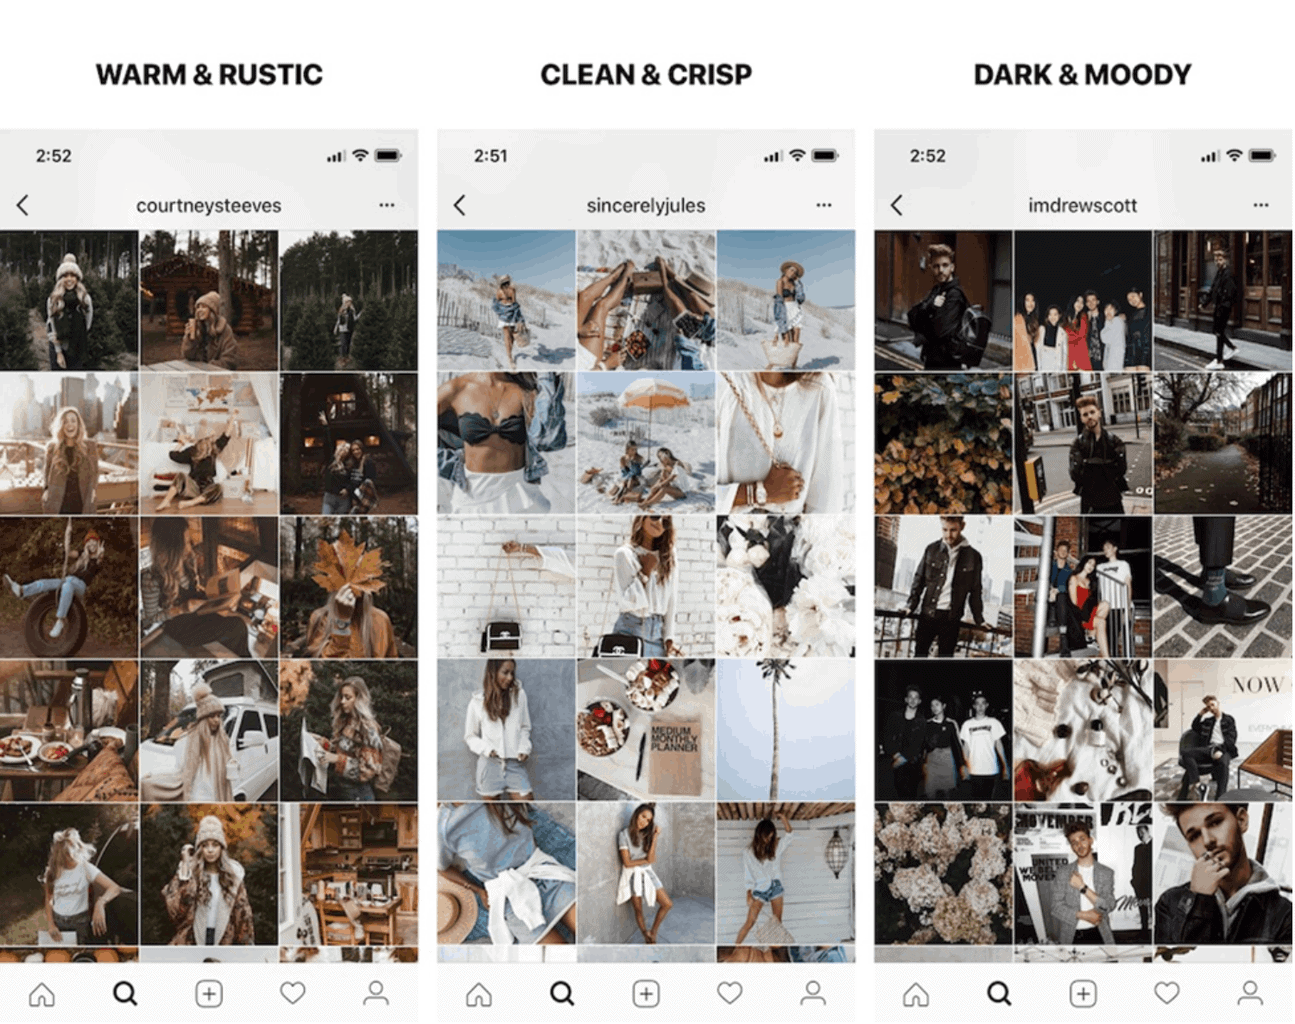 Individuals are finding ways to grow their Instagram following to brand-level prorportions